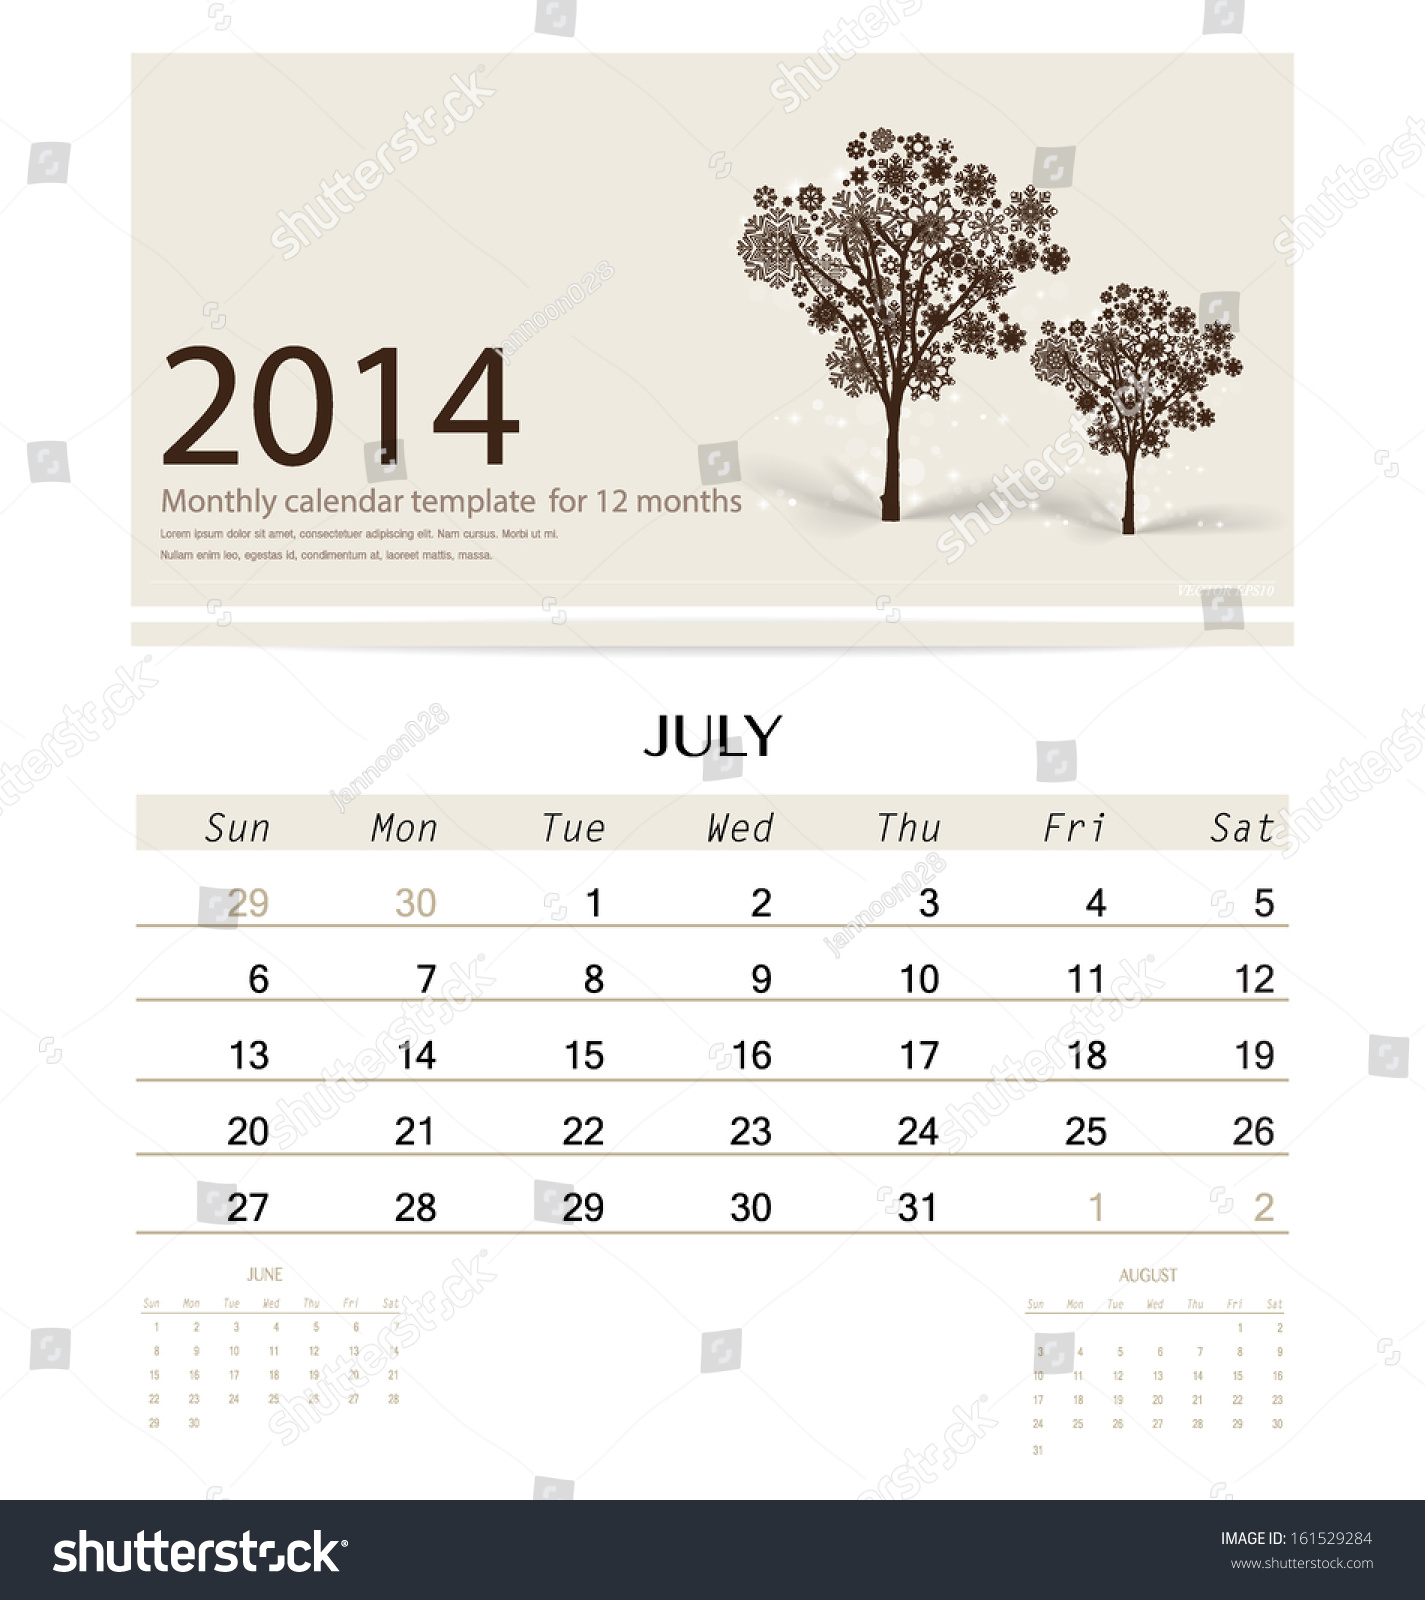 Calendar Monthly Design : Calendar monthly template for july